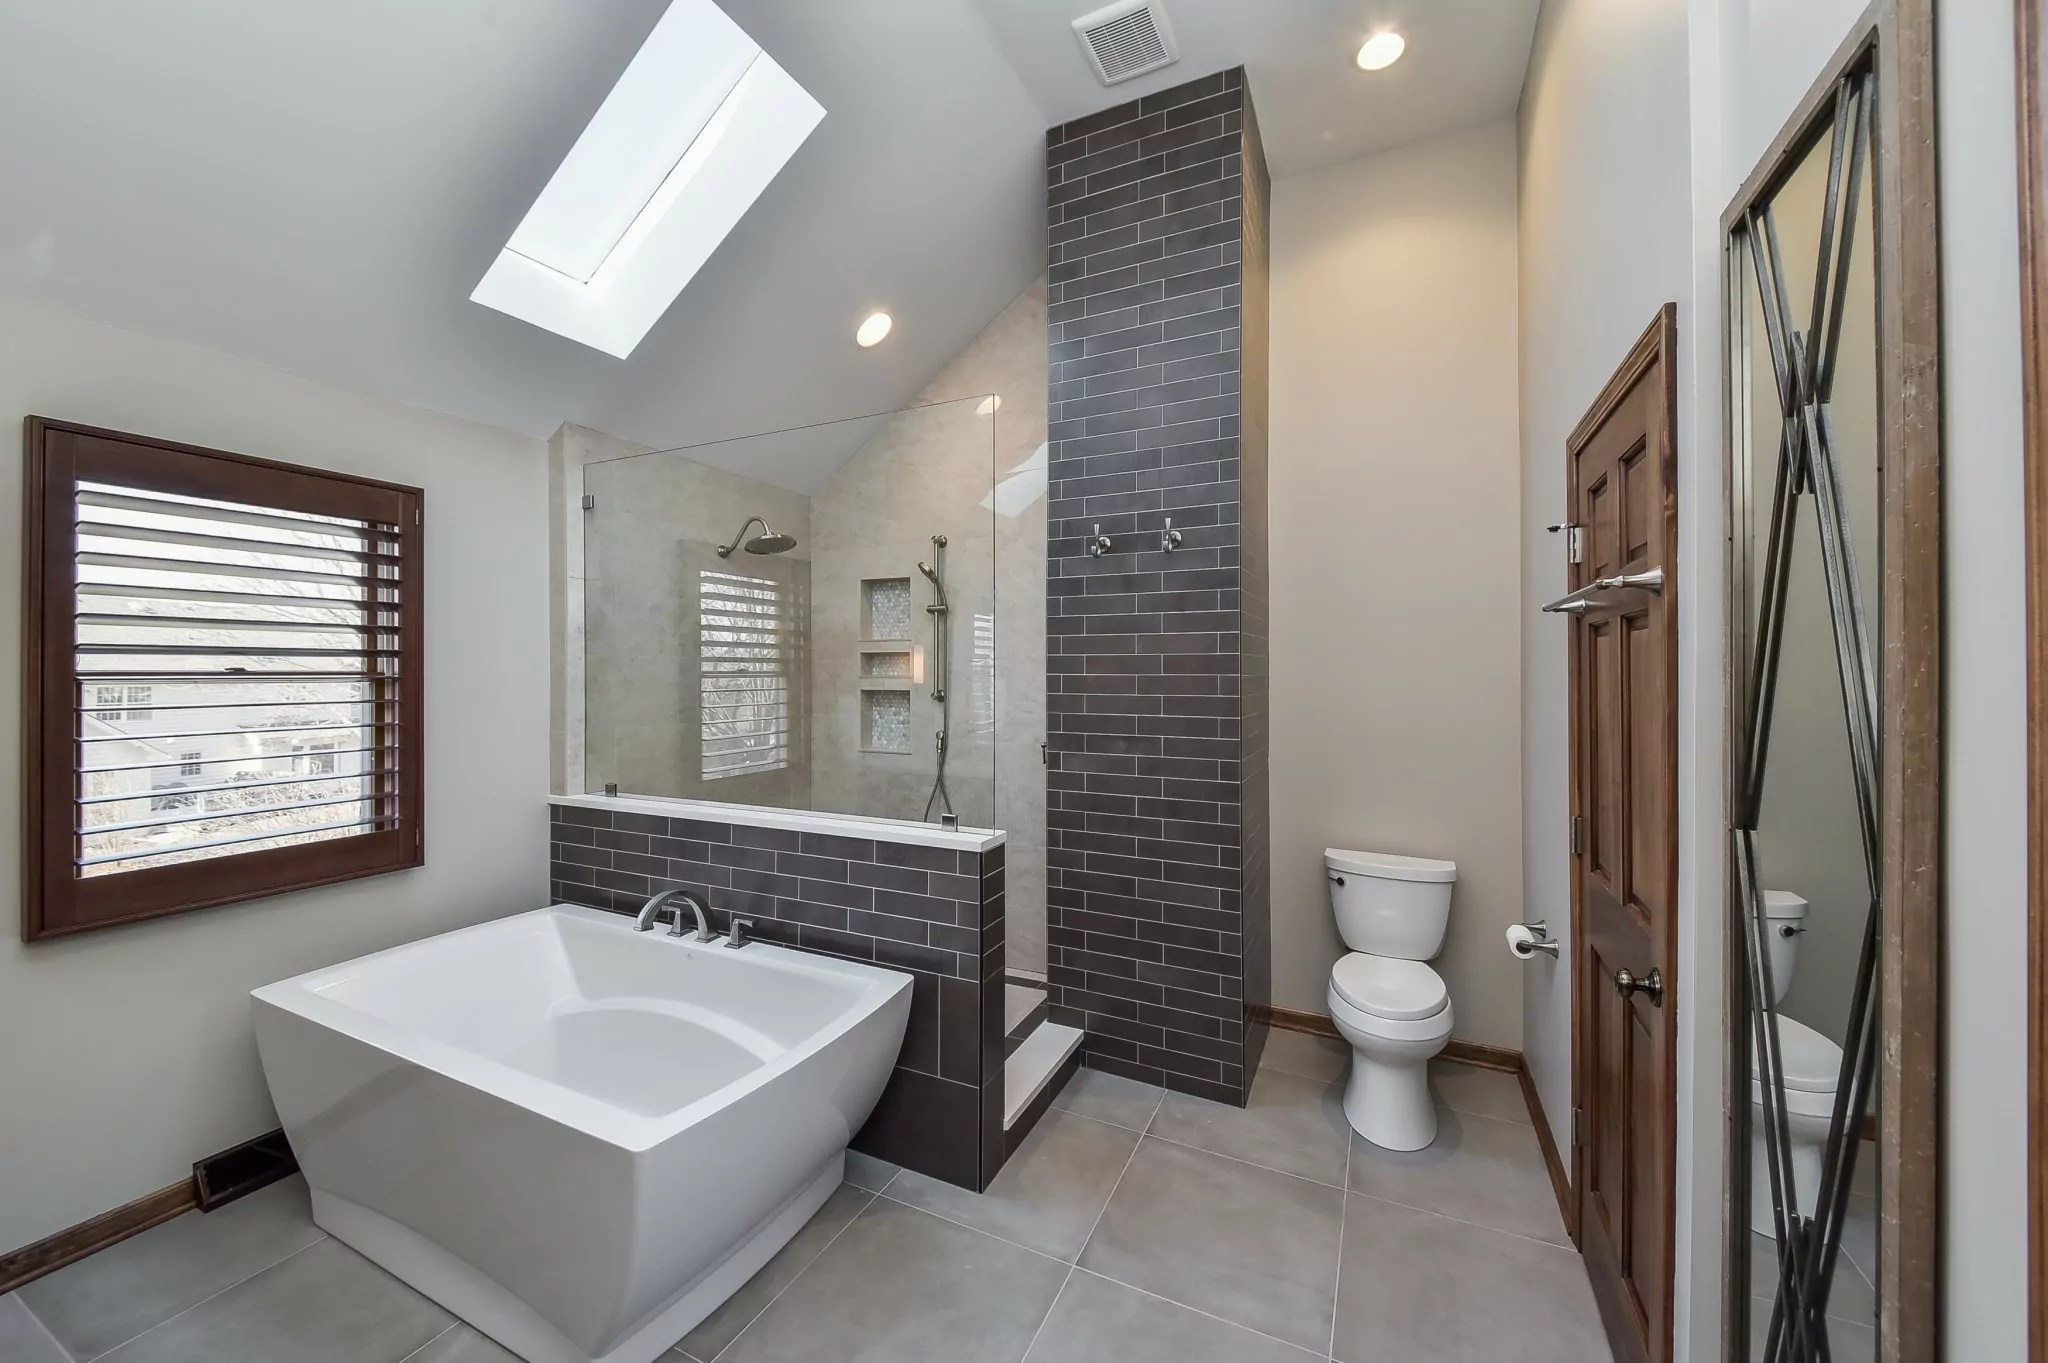 Bathroom Remodeling Contractor in Beverly Hills CA – Creative Innovation Developers Inc.